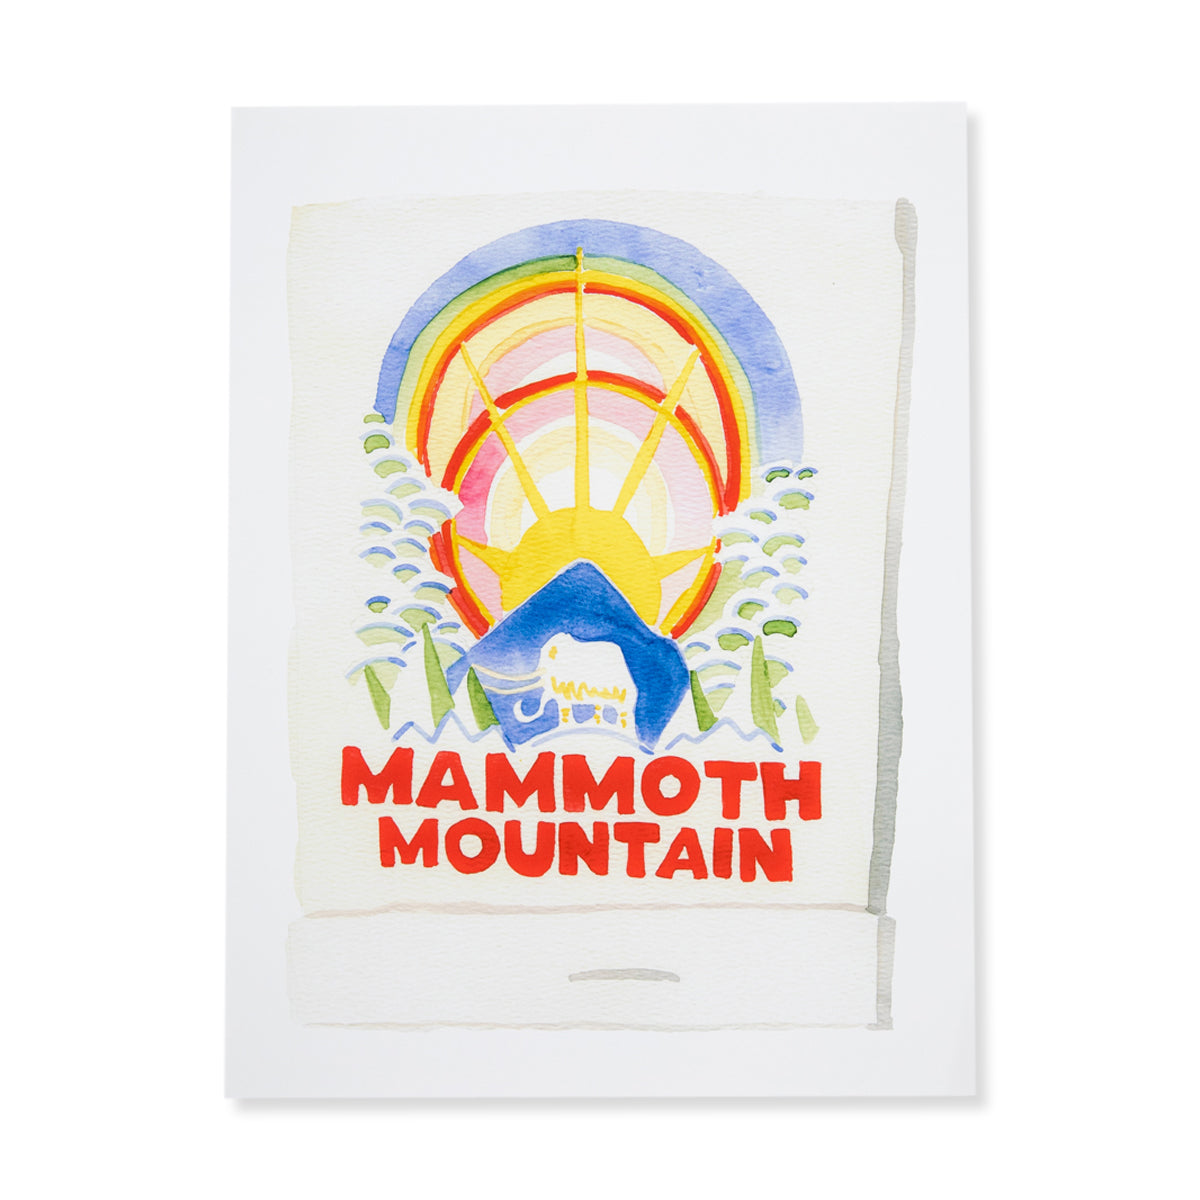 Furbish Studio - Mammoth Mountain Matchbook Watercolor Print unframed